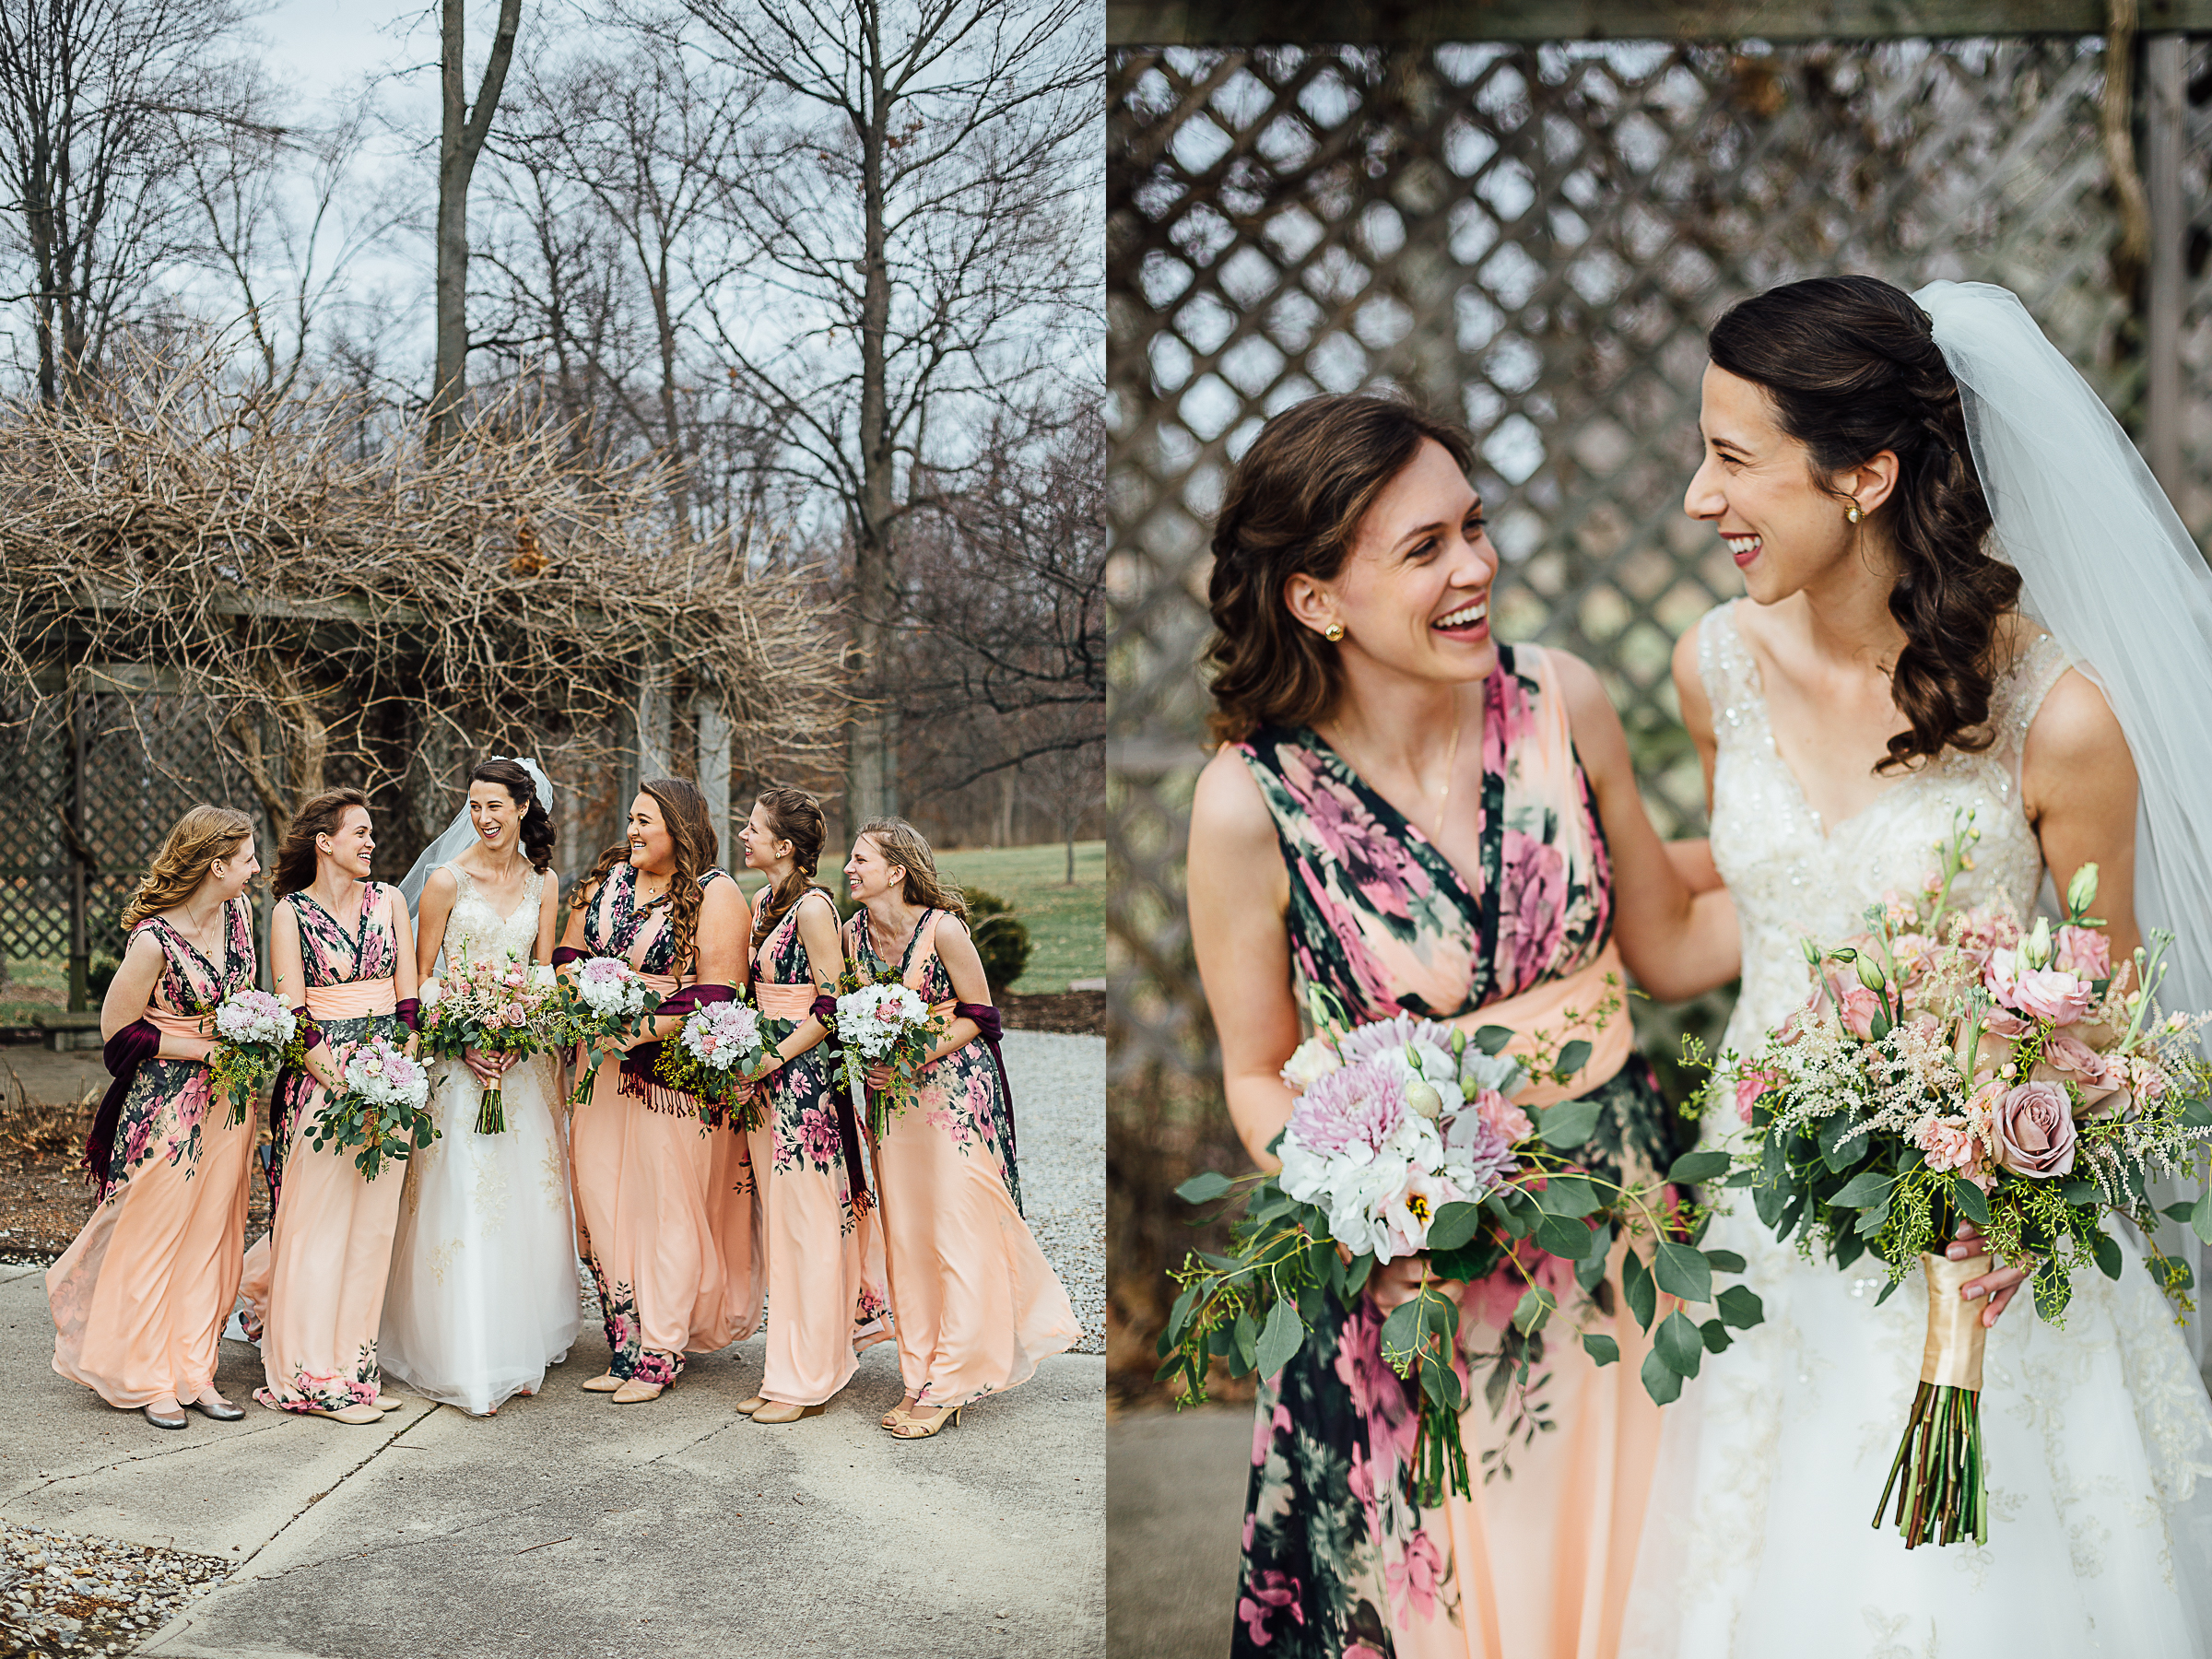 Happy Bride and Bridesmaids by Corrie Mick Photography.jpg